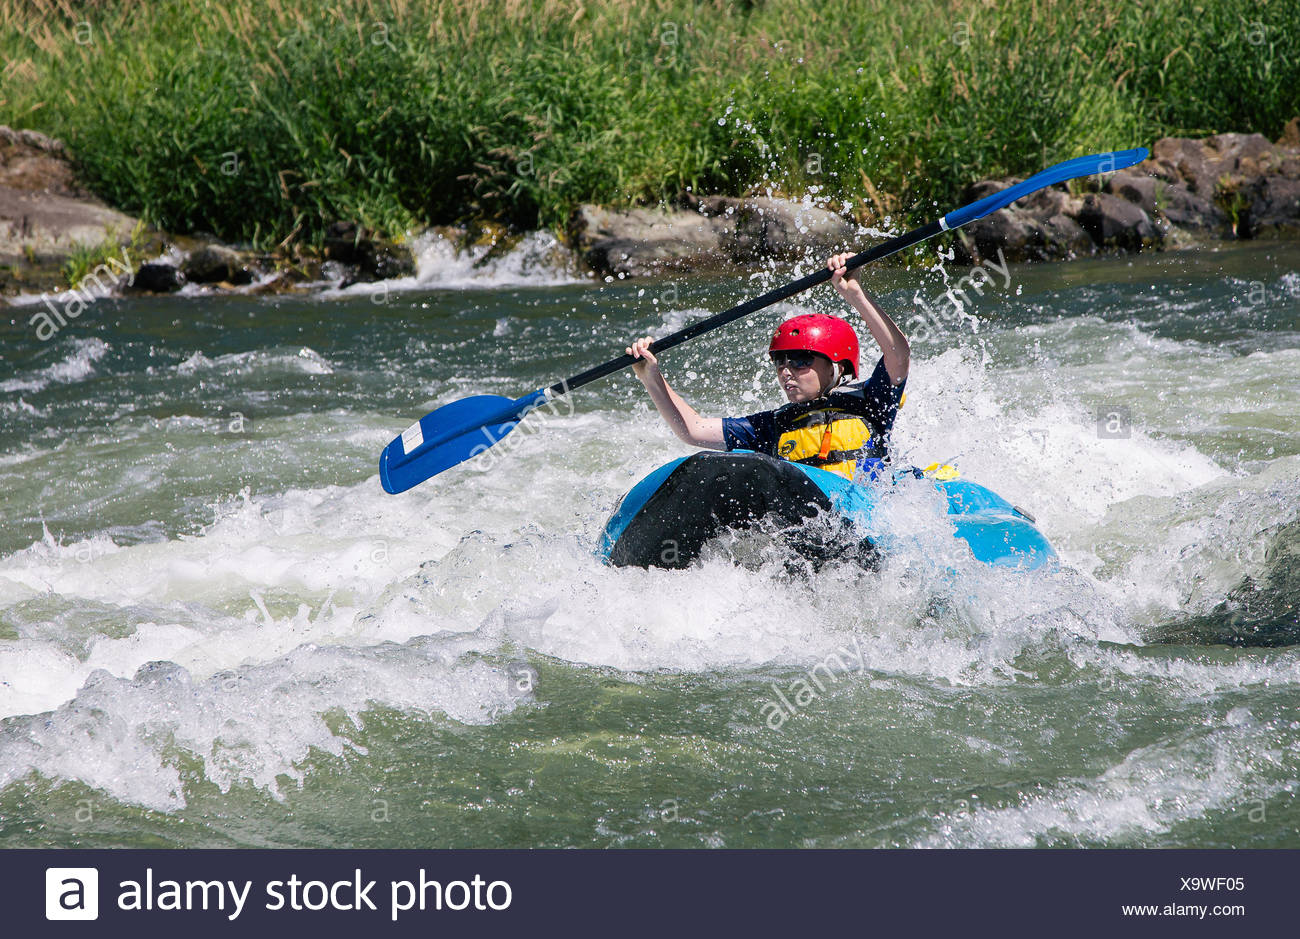 A boy paddles an inflatable kayak through rapids on the Rogue River. - Stock Image